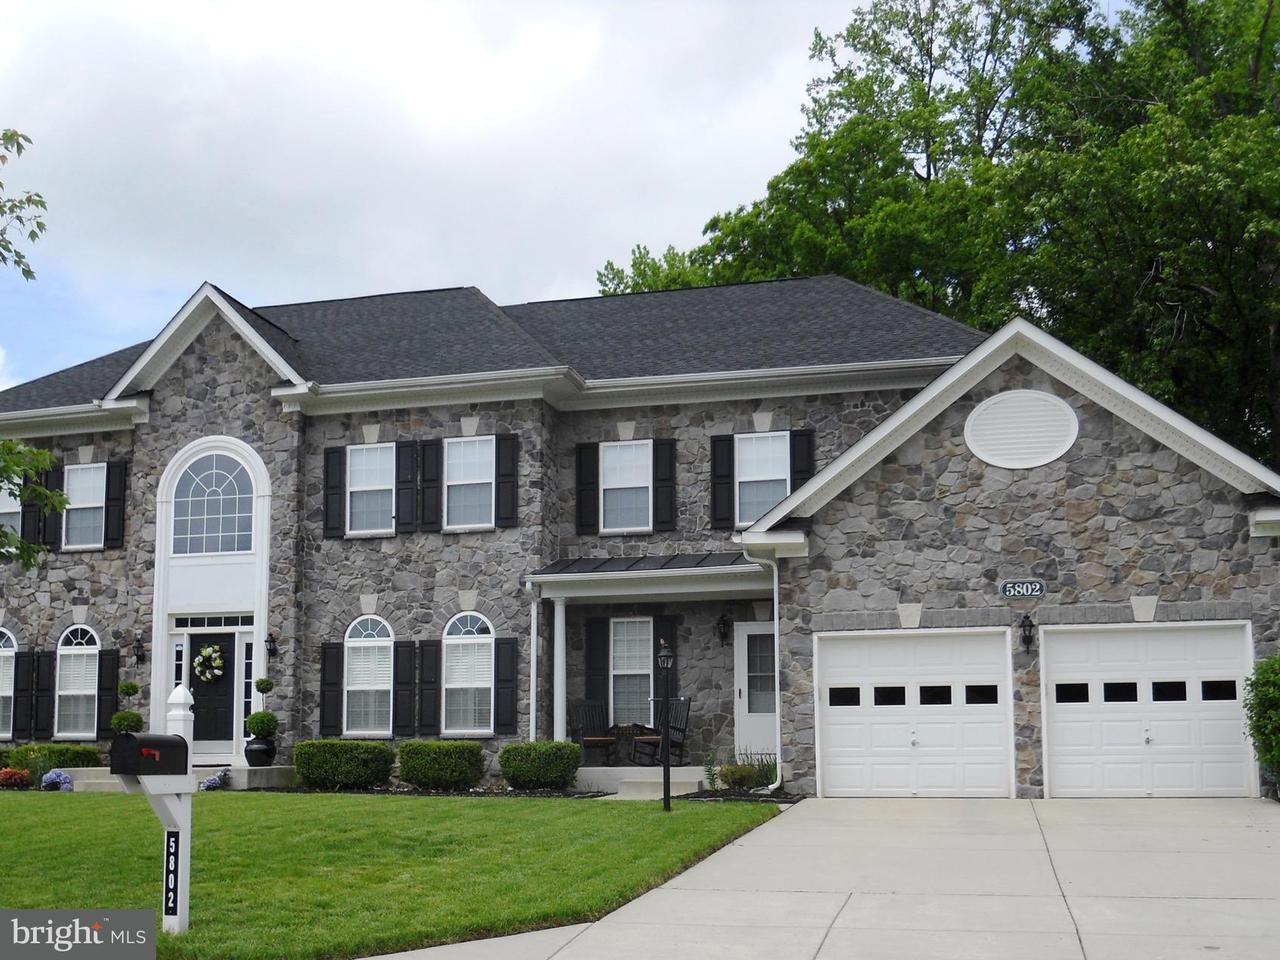 Single Family Home for Sale at 15504 Over Land Court 15504 Over Land Court Aquasco, Maryland 20608 United States